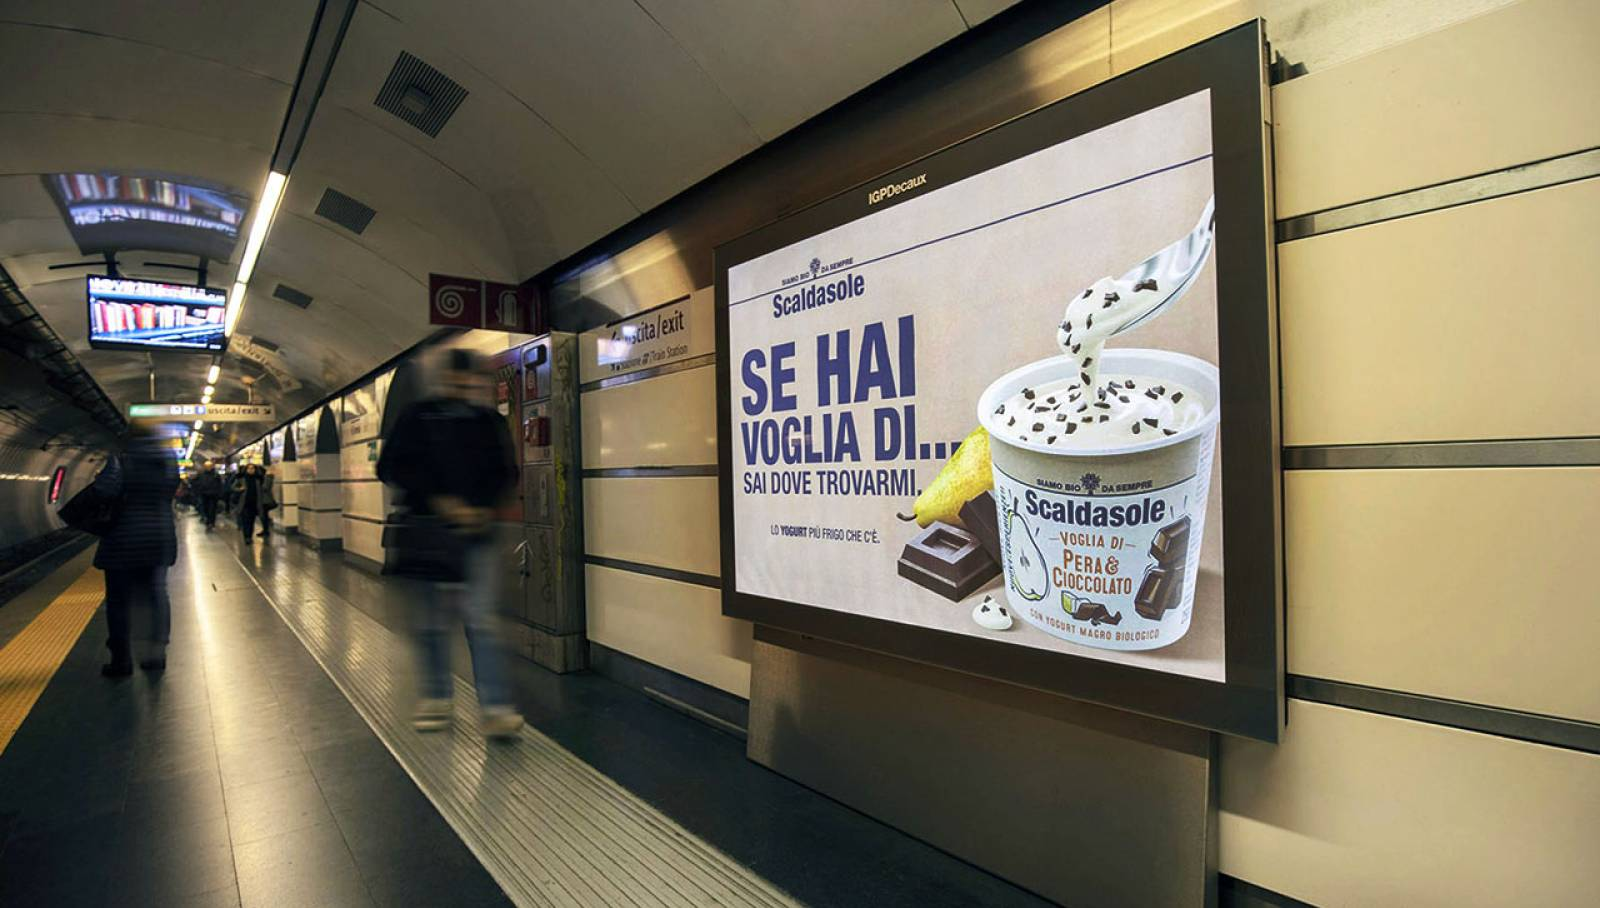 OOH Underground advertising Landscape coverage Network IGPDecaux in Rome for Scaldasole